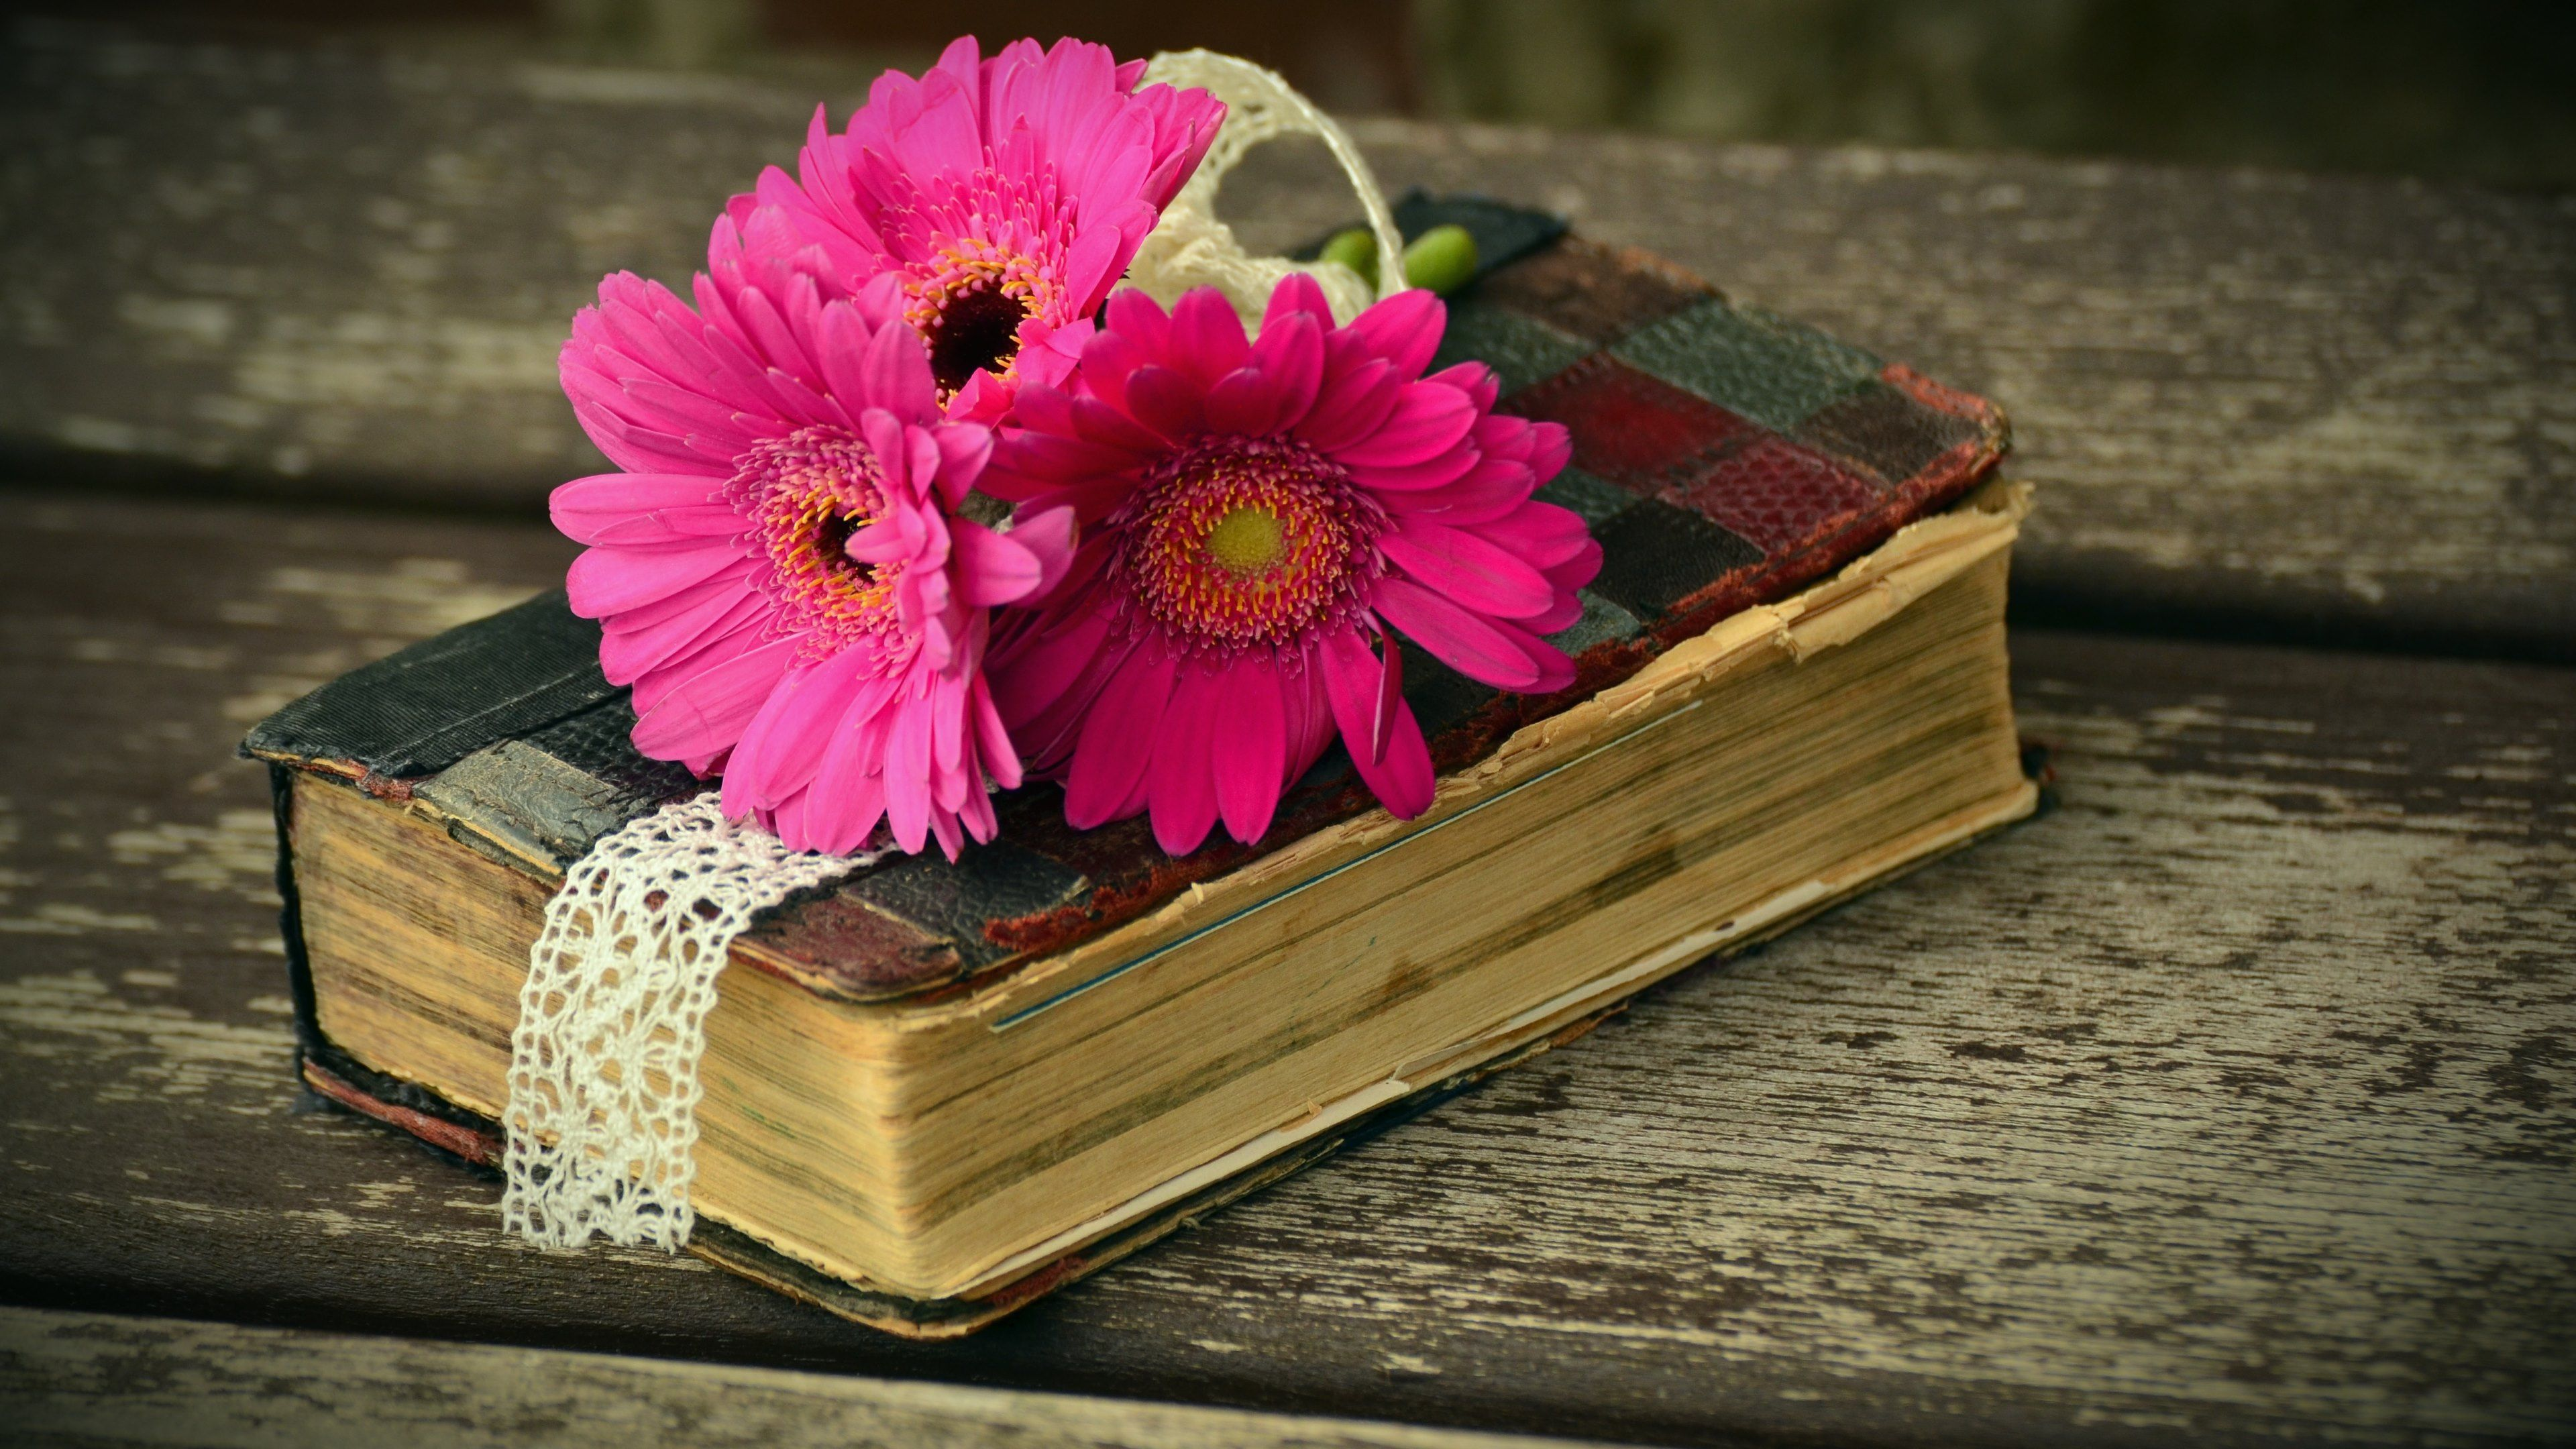 Old Book And Gerbera Flowers Wallpapers 4k Hd Desktop Books